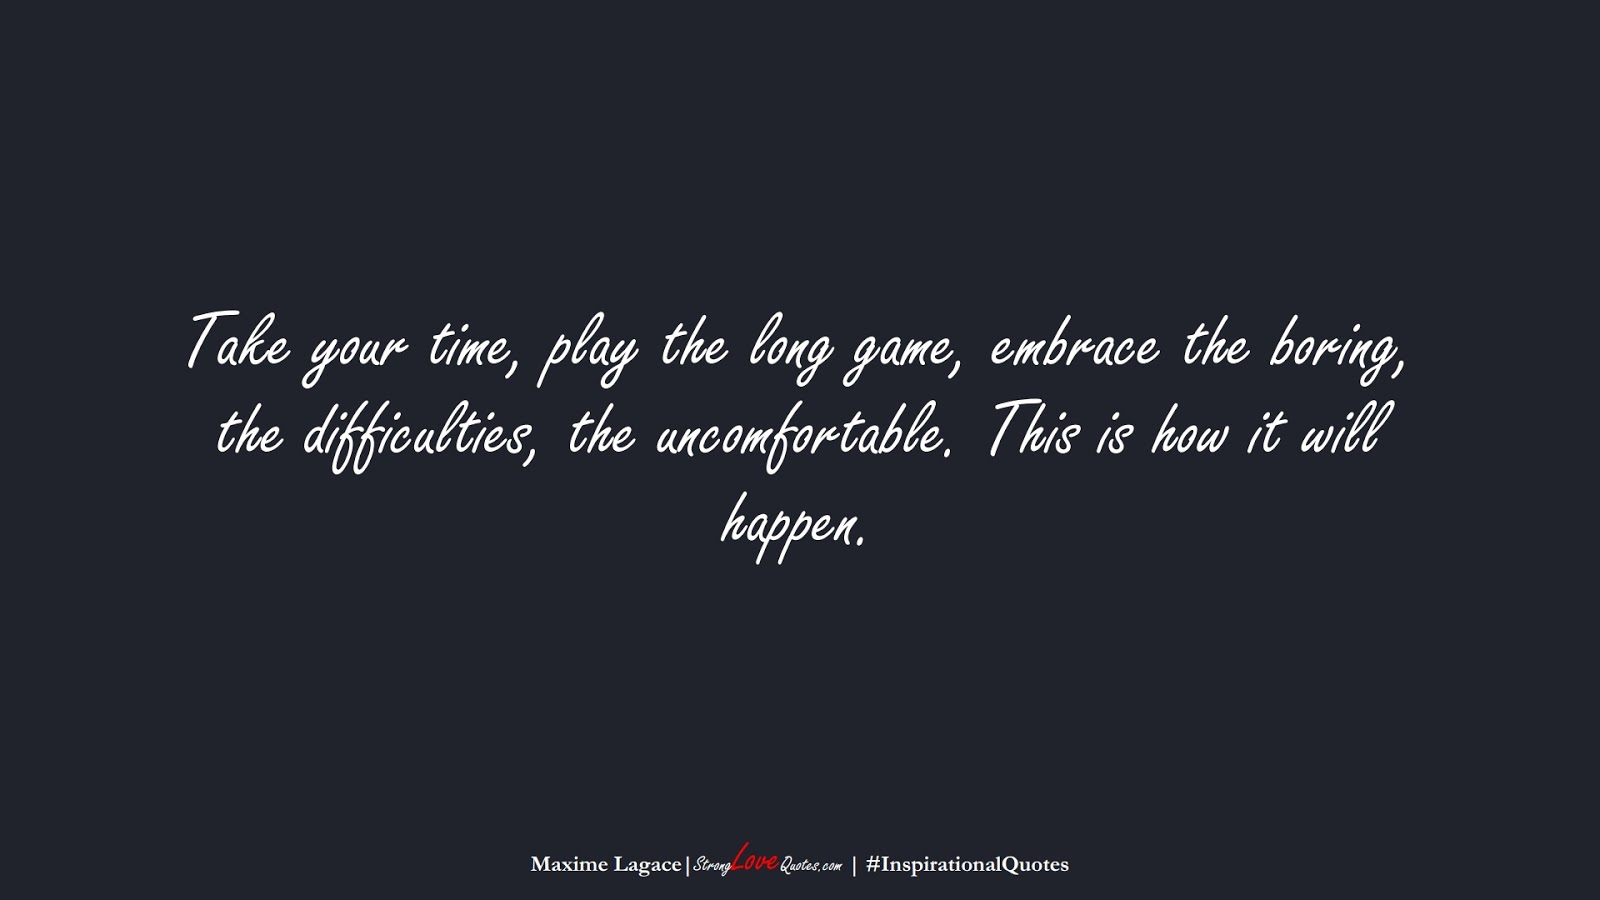 Take your time, play the long game, embrace the boring, the difficulties, the uncomfortable. This is how it will happen. (Maxime Lagace);  #InspirationalQuotes